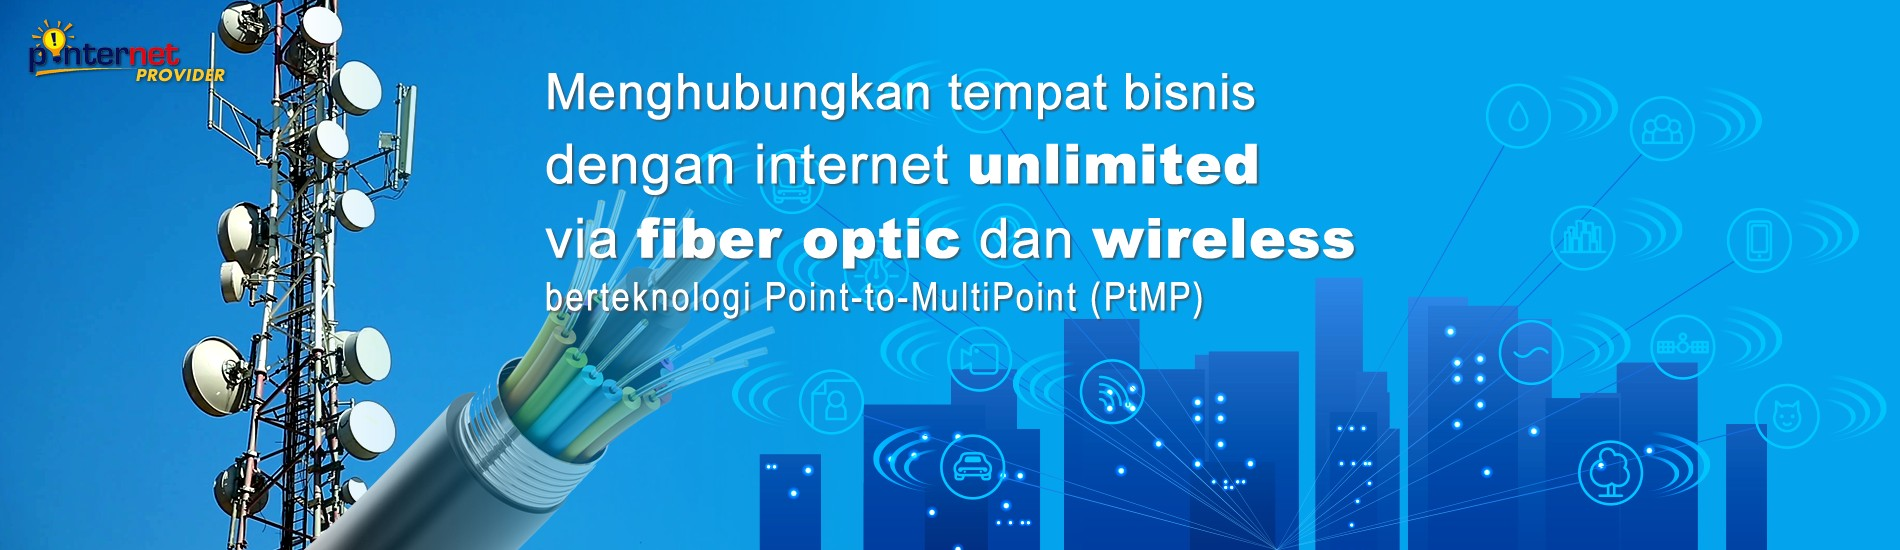 Internet Unlimited